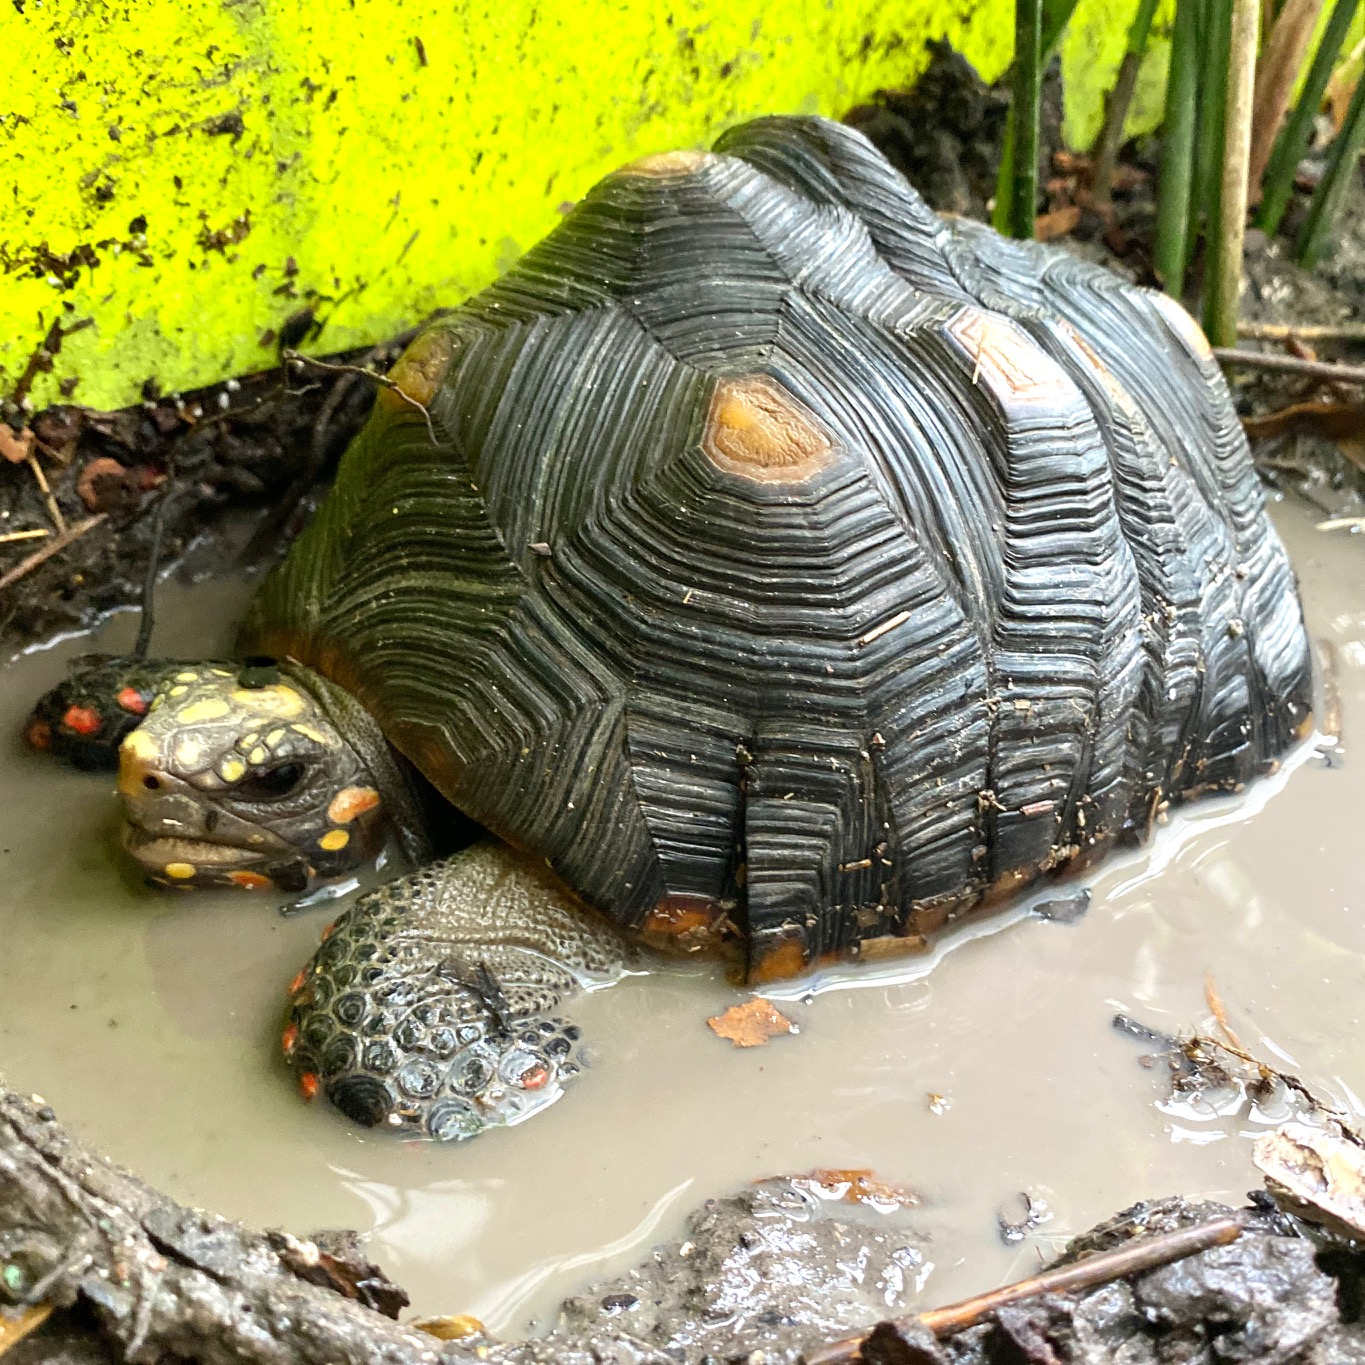 tortoise takes a mud bath